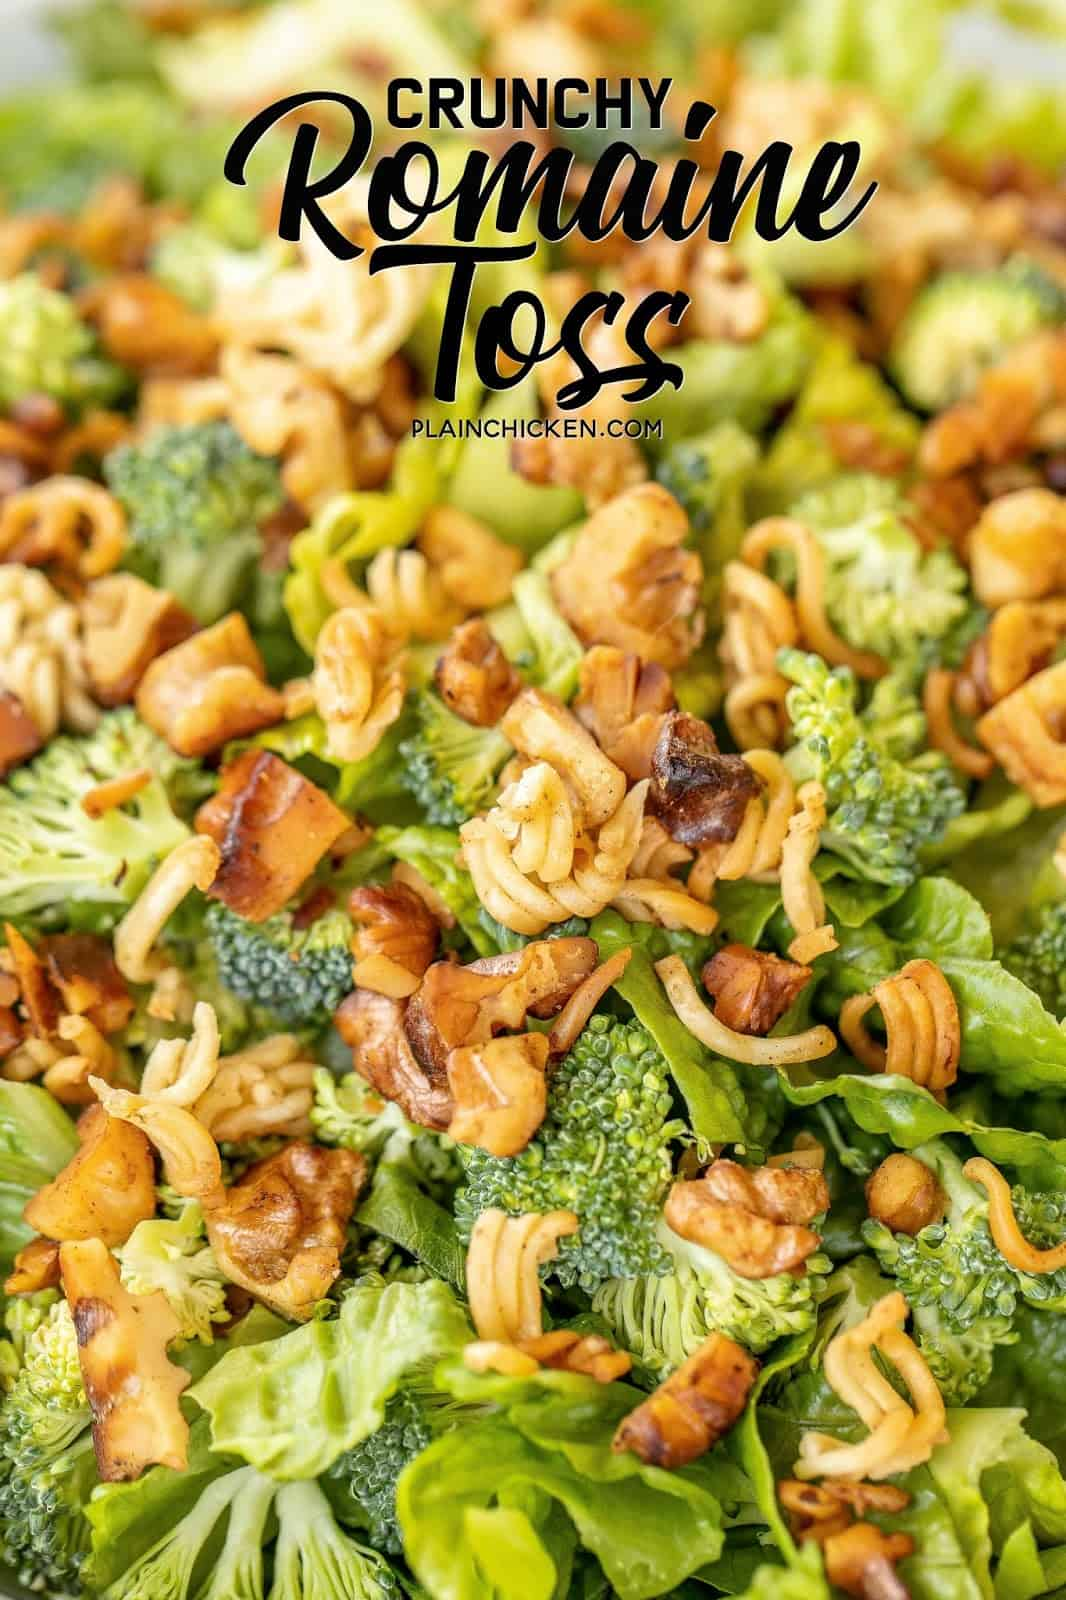 Crunchy Romaine Toss - CRAZY GOOD!!! Had this at a dinner party and everyone raved about it. I had to get the recipe so I could make it at home. SO easy to make and it tastes DELICIOUS!!! Romaine lettuce, broccoli, ramen noodles, butter, walnuts, red wine vinegar, vegetable oil, soy sauce, sugar, salt and pepper. Great for dinner parties and potlucks! We make this at least once a month! SO good! #salad #sidedish #vegetables #romainelettuce #broccoli